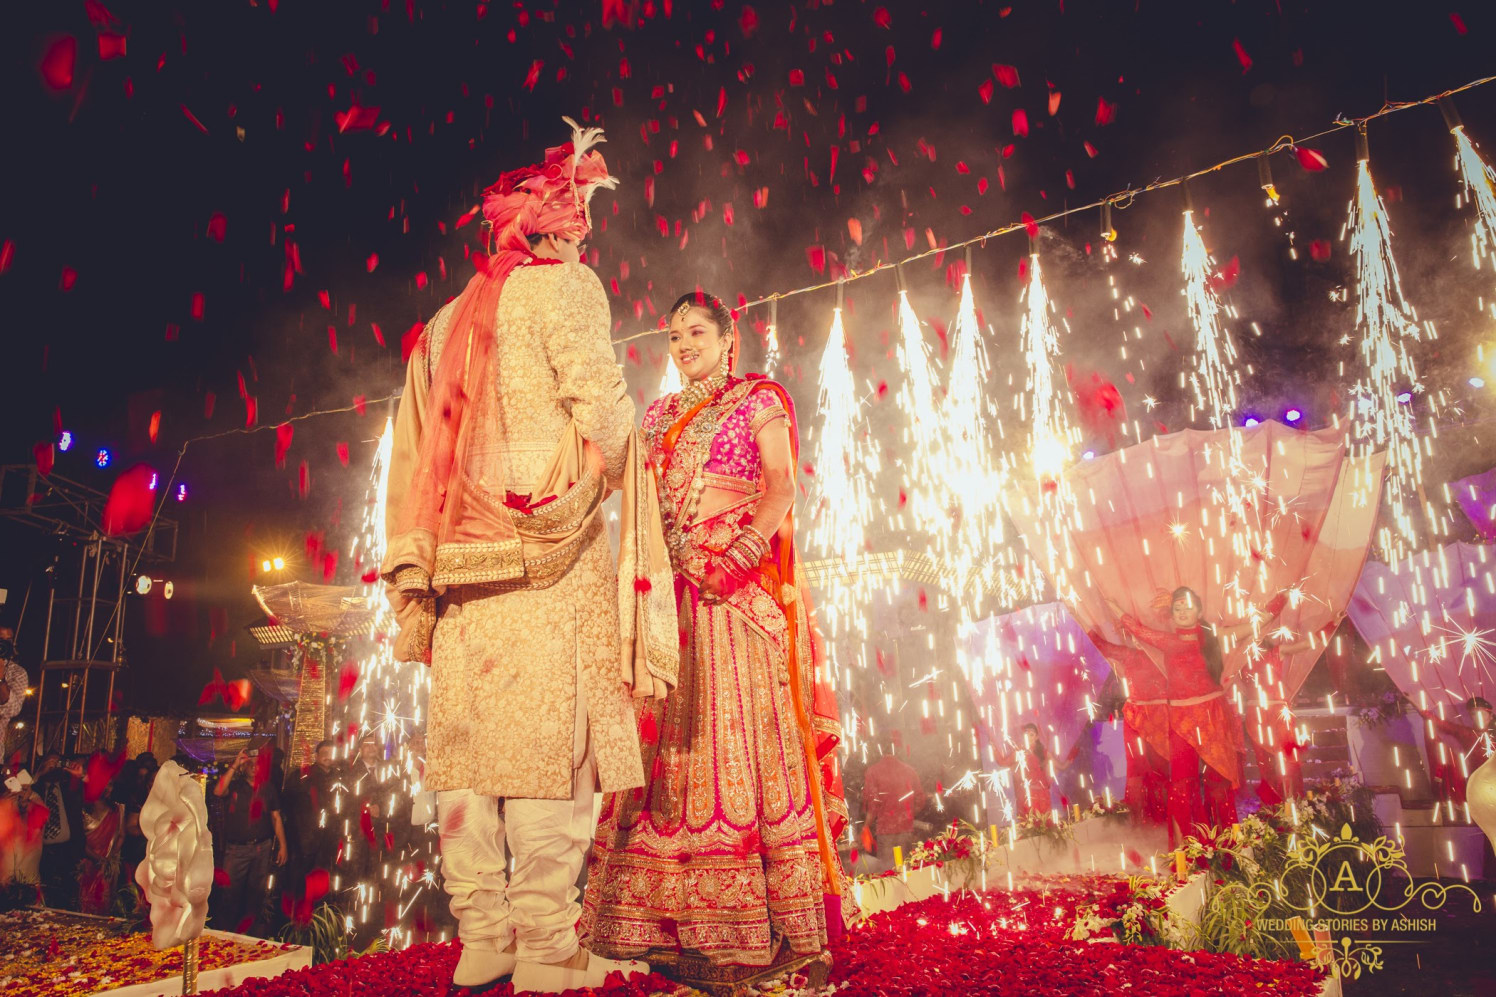 Leaving A Little Sparkle by Ashish Vengurlekar Wedding-photography | Weddings Photos & Ideas